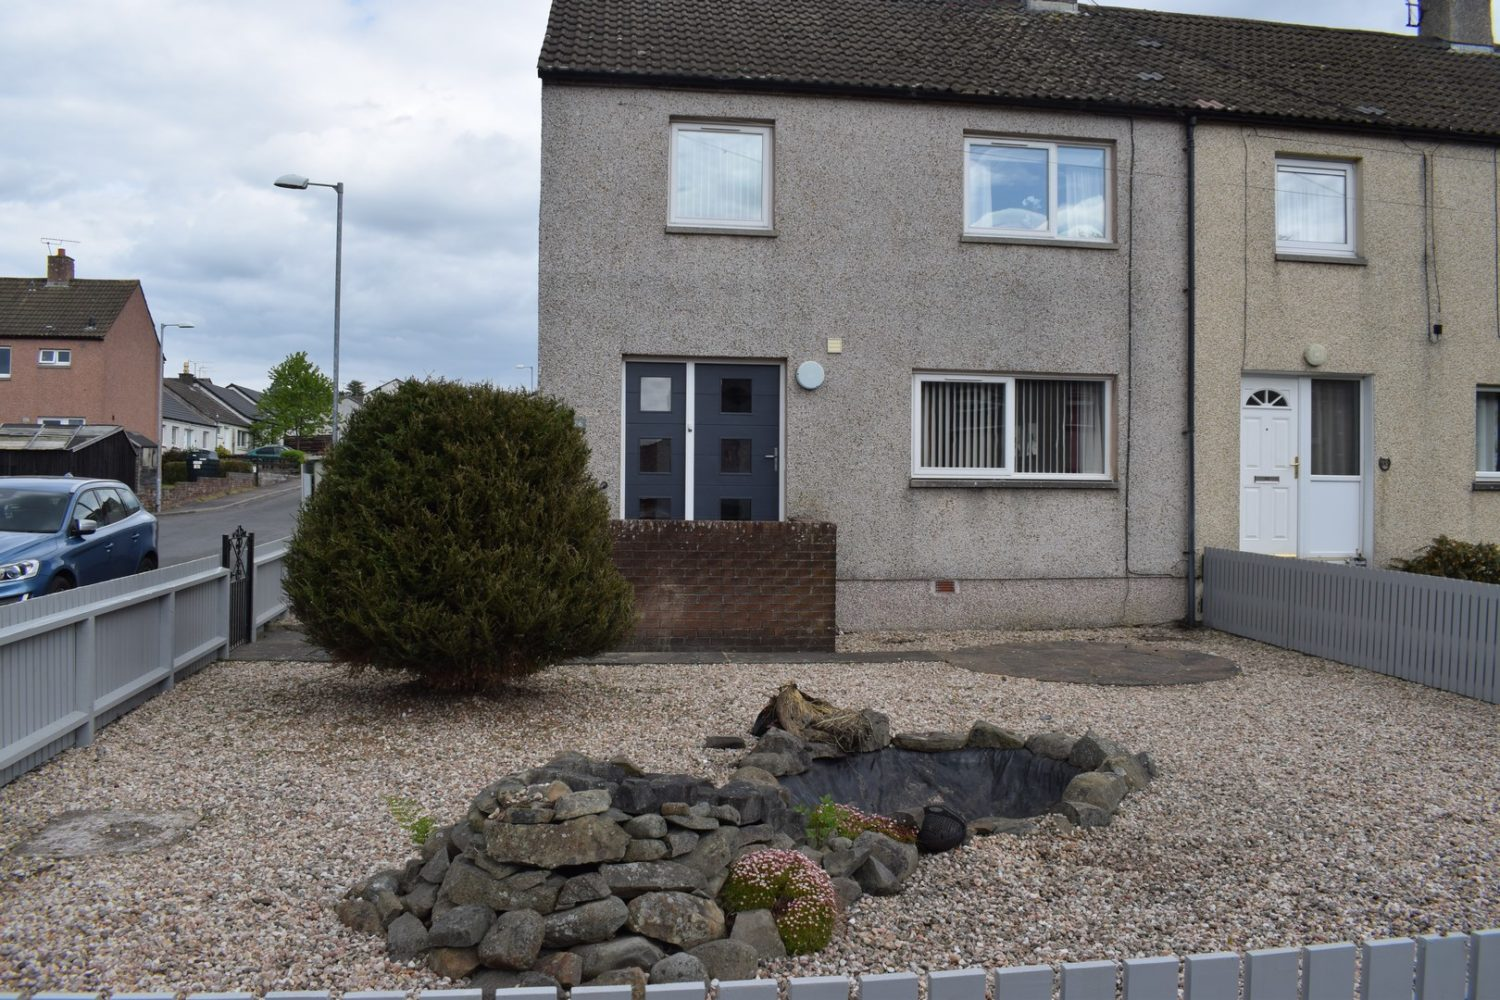 86 Laghall Court, Kingholm Quay, Dumfries DG1 4SY - Grieve Grierson Moodie & Walker